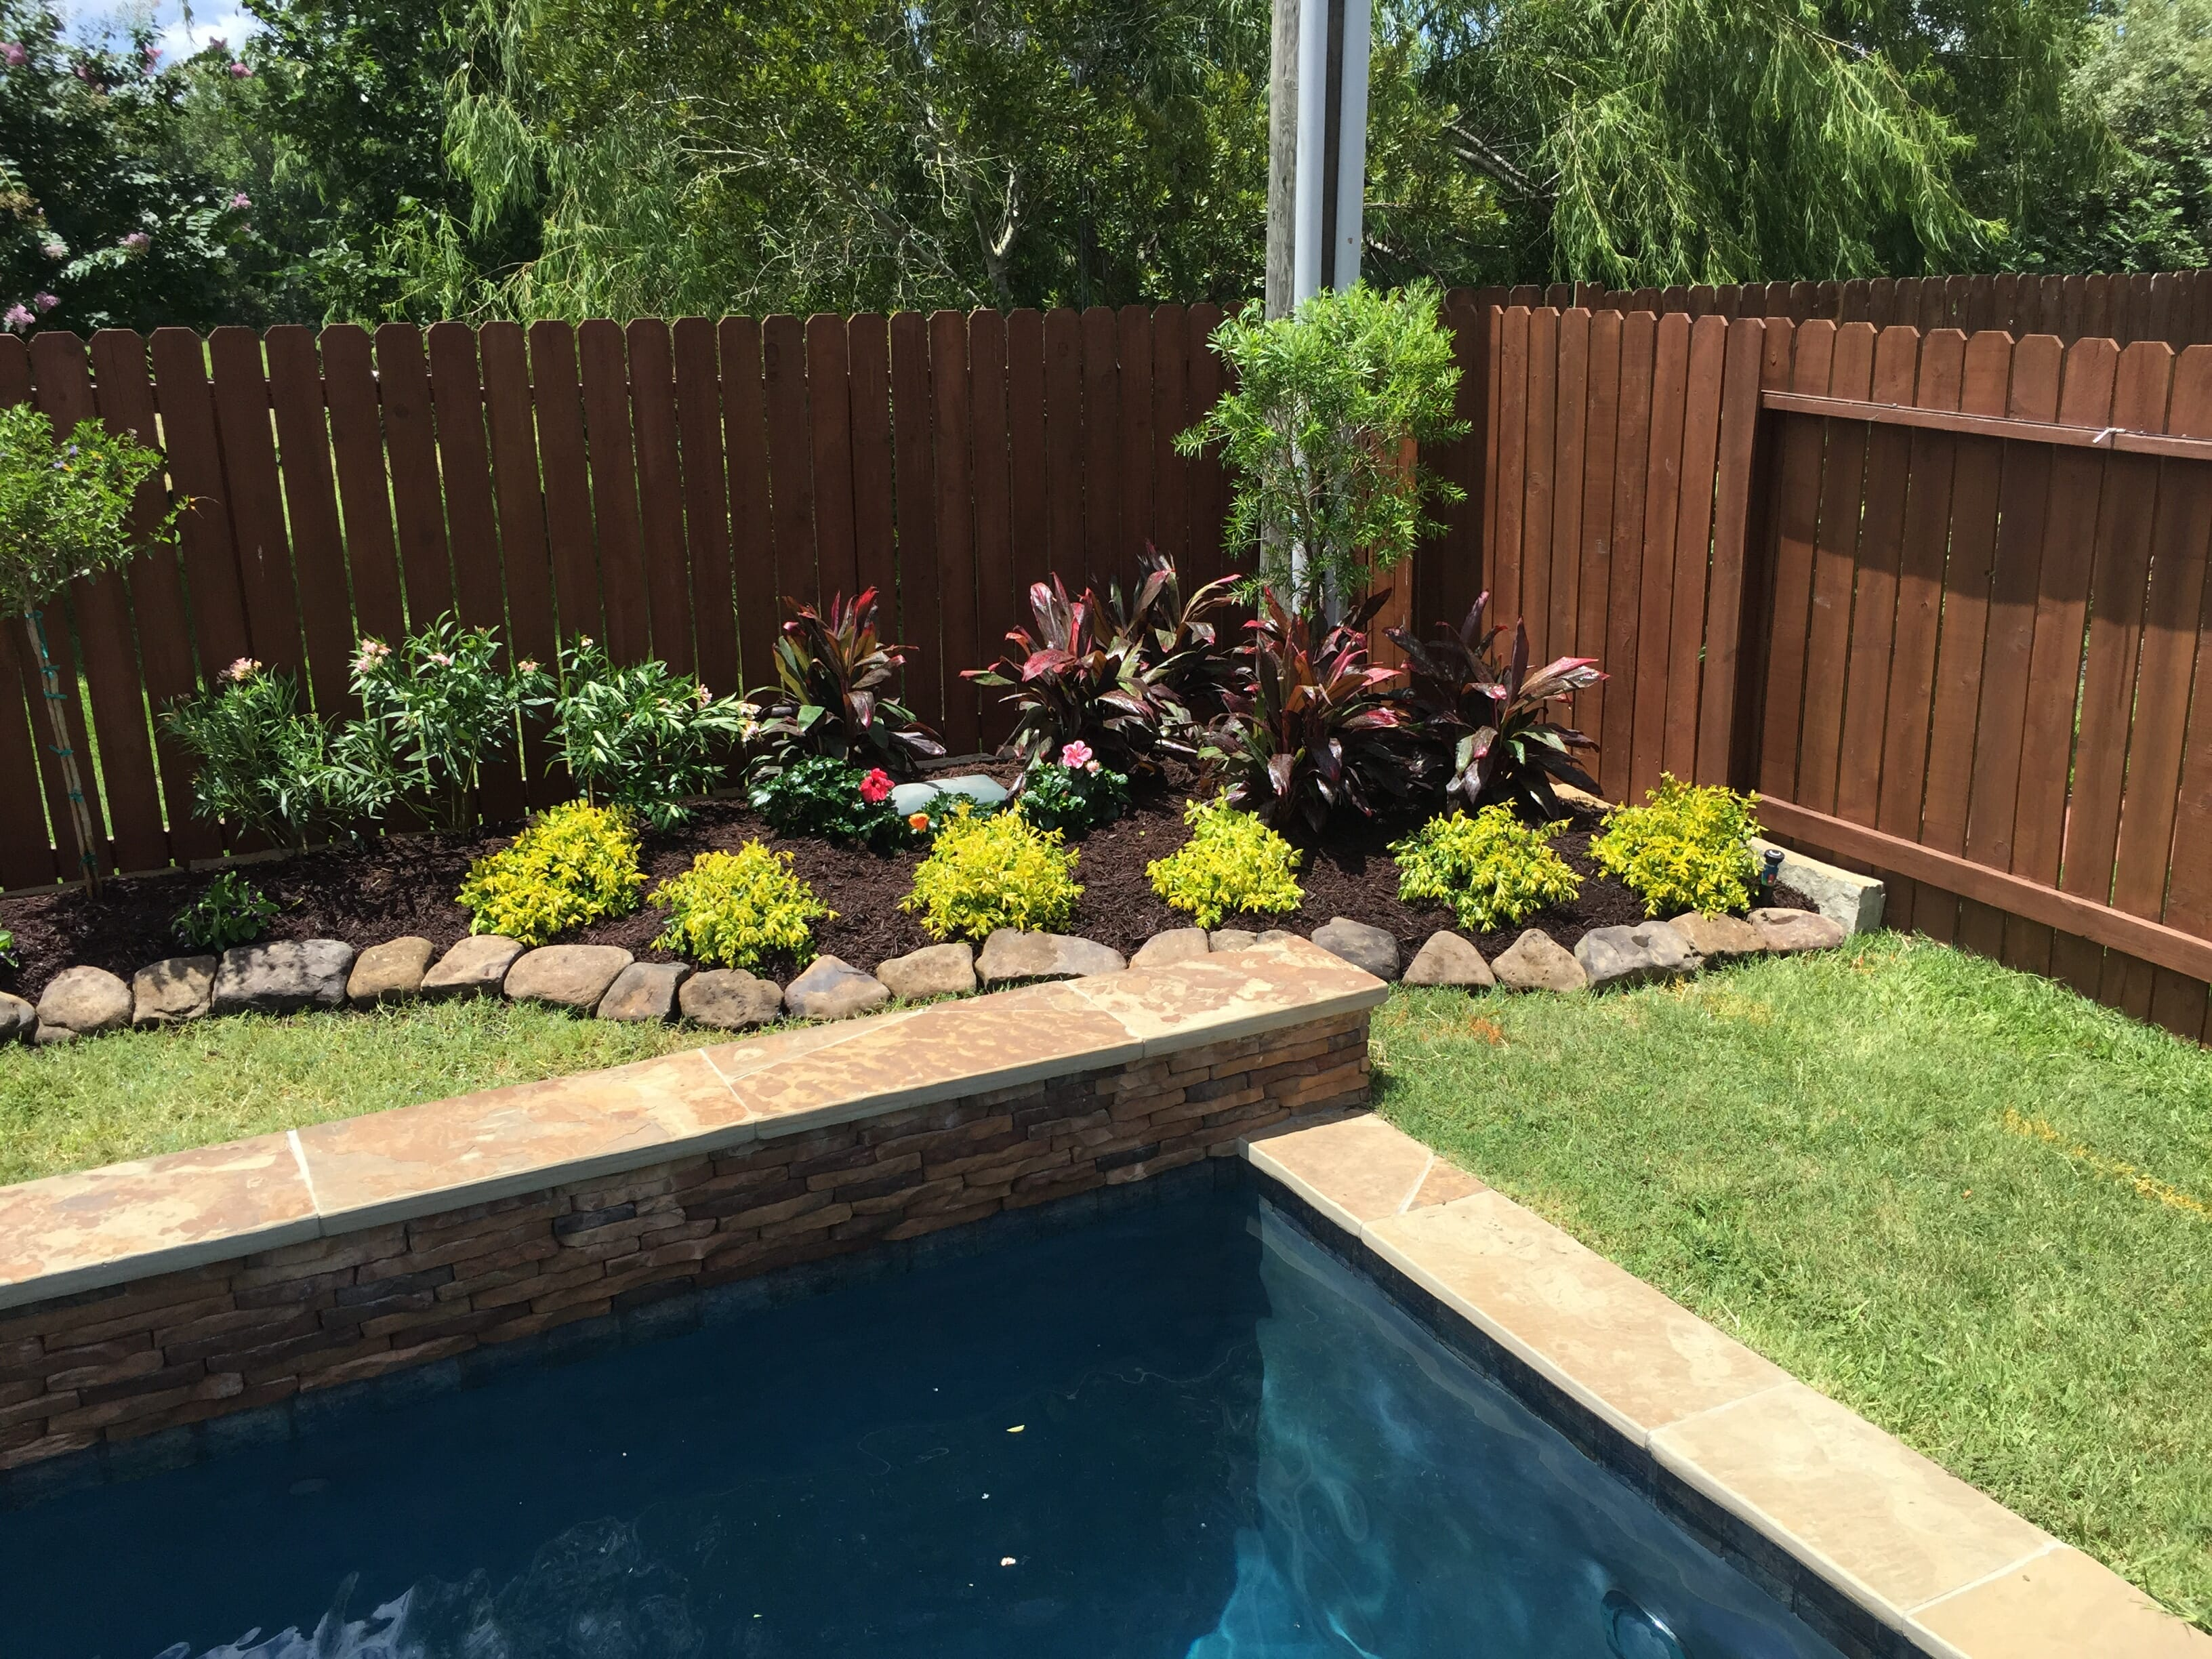 ... Custom Residential Landscaping Team From Brogdon Landscaping Can Help  You Design Your Very Own Custom Landscaping That Suits Your Budget, Your  Home, ...